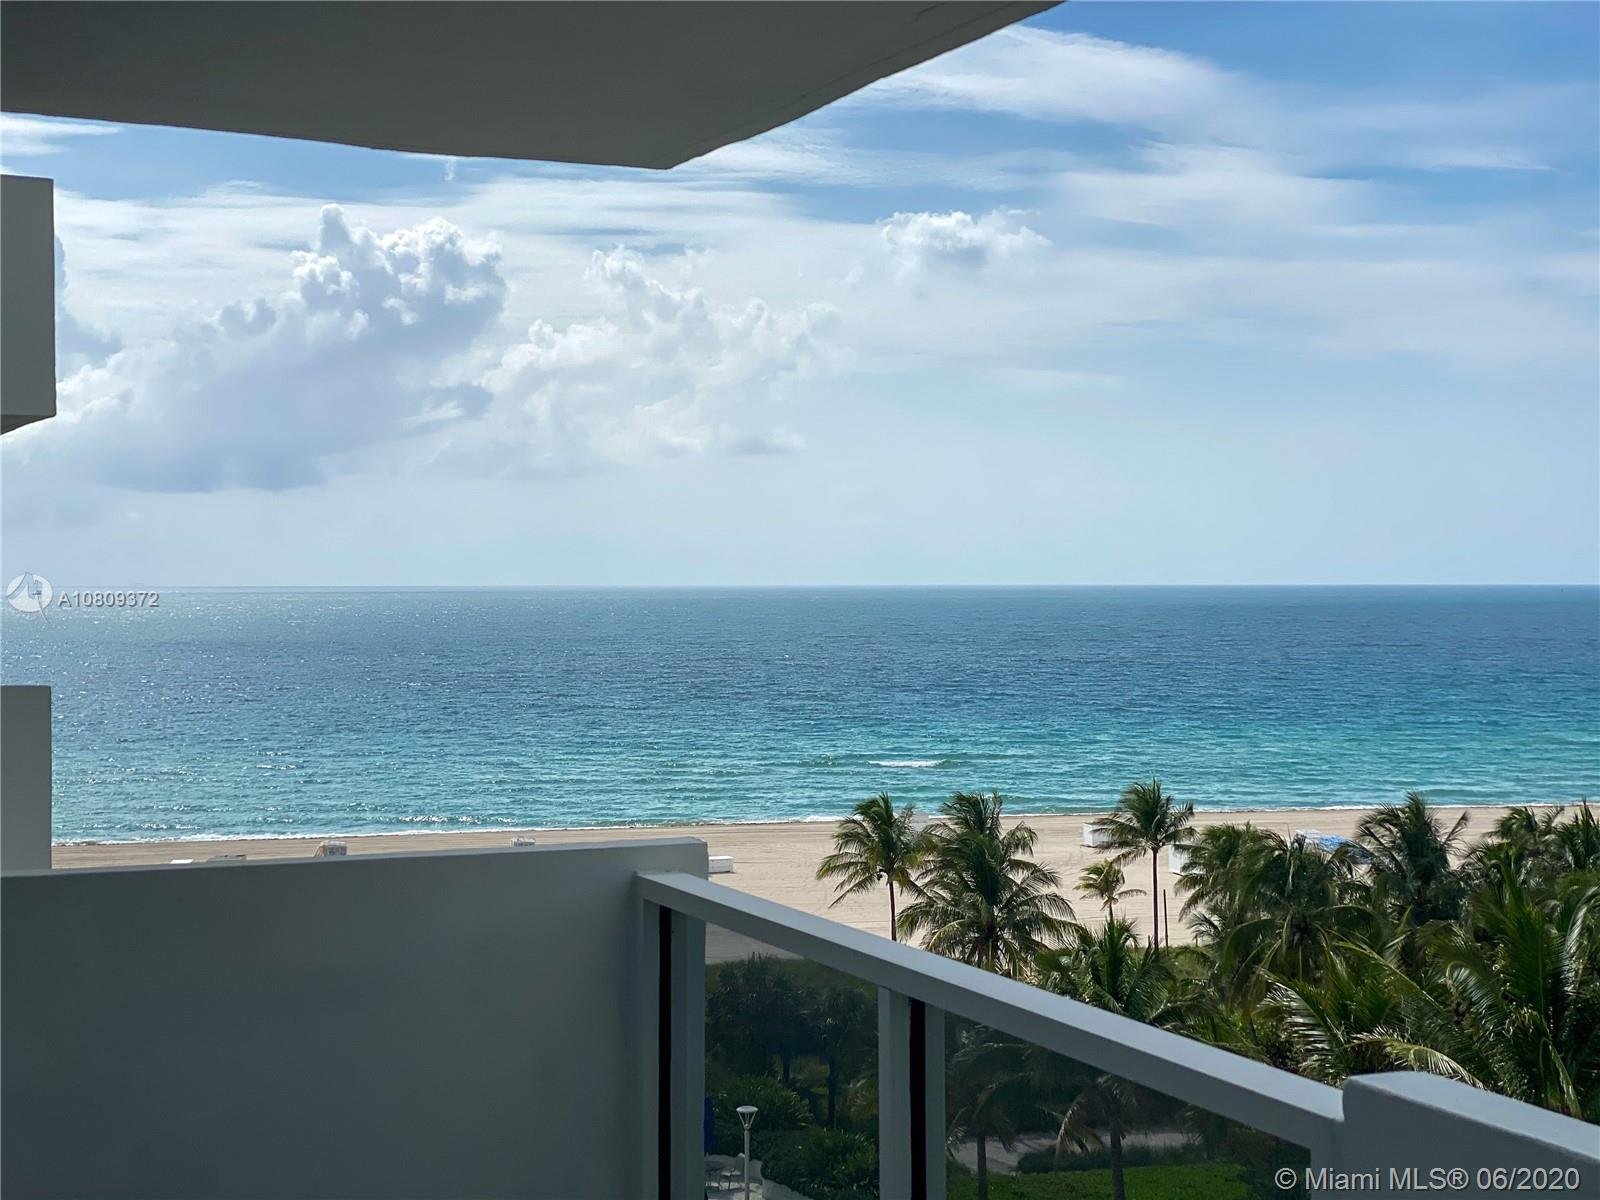 Very desirable junior 1 bedroom south side unit at the Decoplage. Located right off Lincoln Rd and Collins on the ocean. Great view of the ocean and the beach. Faces the ocean/garden so the unit is very quiet. The building allows short term rentals (30 days Minimum) and 12 times a year, so its a perfect pied-à-terre. Come stay and rent while you are not here or buy as an investment for great returns. The building has a large heated pool, recently remodeled gym, library, game room, 24 hour security, valet and discounted beach service. Already has new impact windows and doors which saves on electricity costs and keeps its quiet.